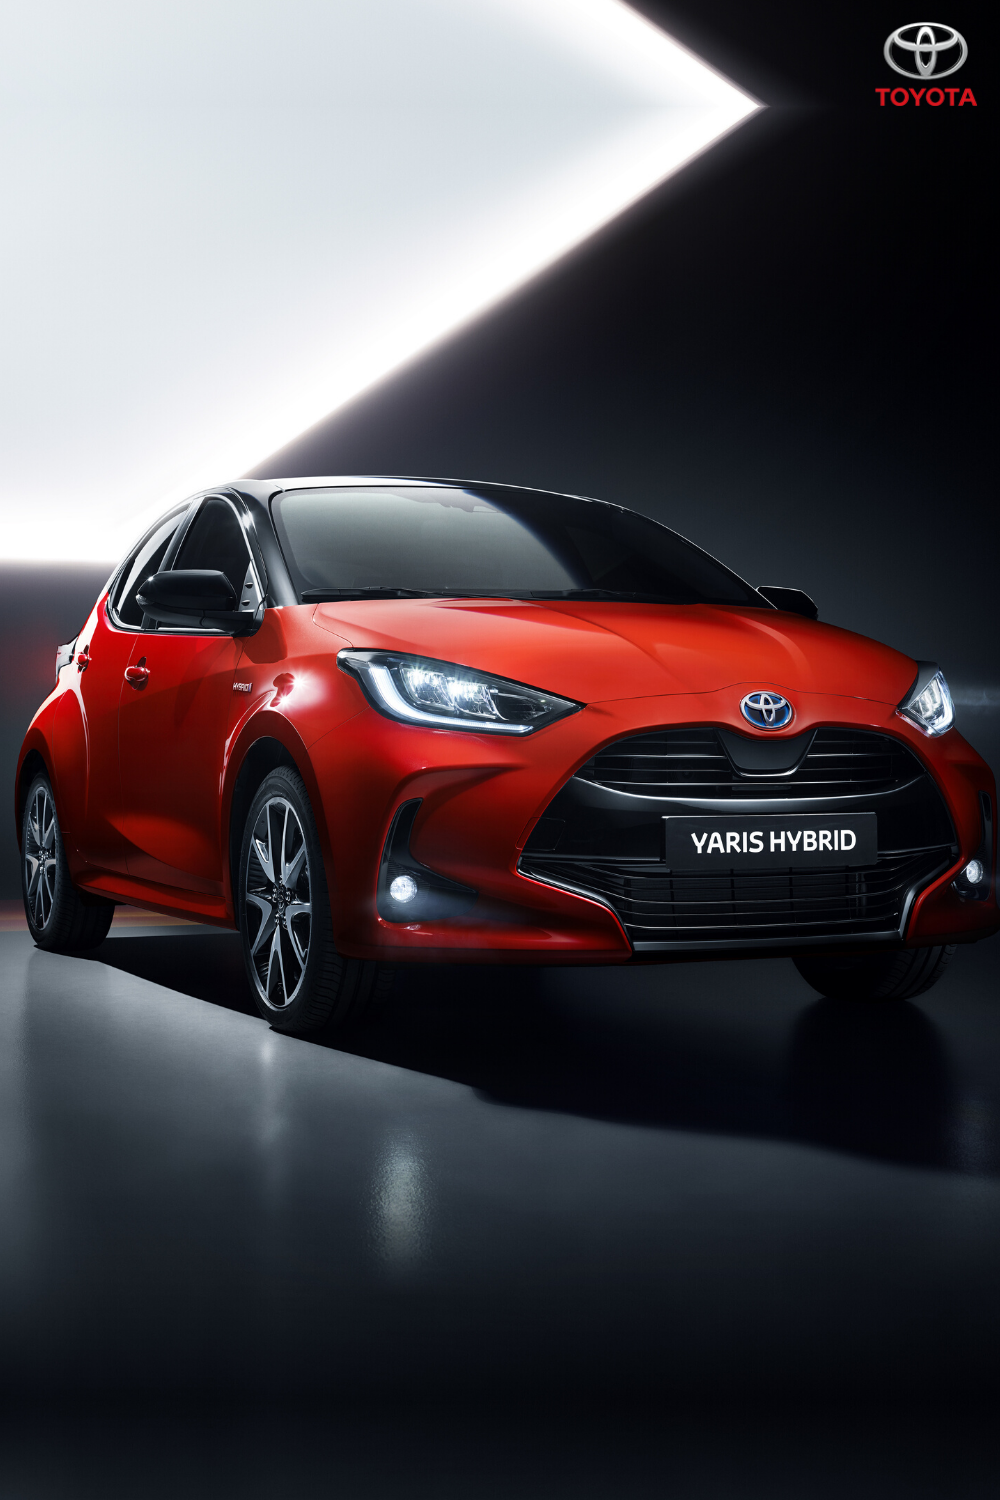 The new Toyota Yaris: designed for everyday urban life, being easy to park and agile in the city yet comfortable on longer journeys. Click to find out more. #Toyota #ToyotaYaris #SmallCar #CompactCar #CityLiving #HybridCar